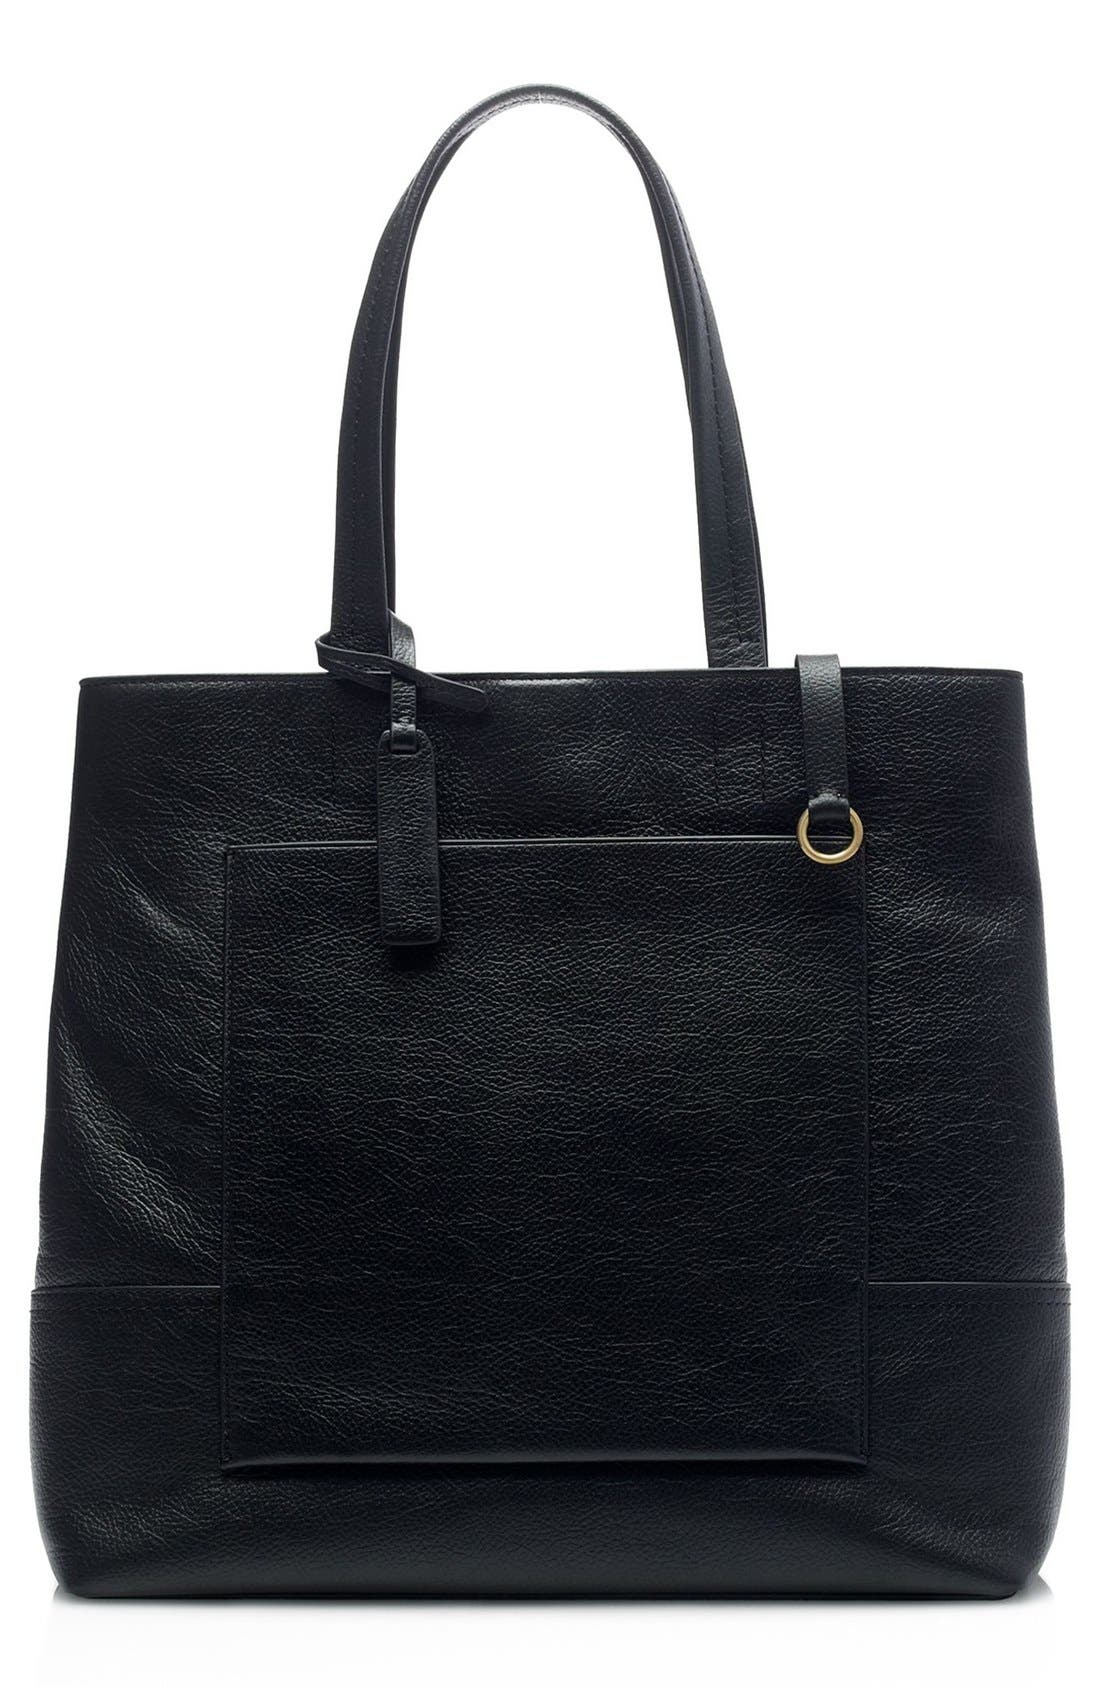 Main Image - J.Crew All-Day Tote